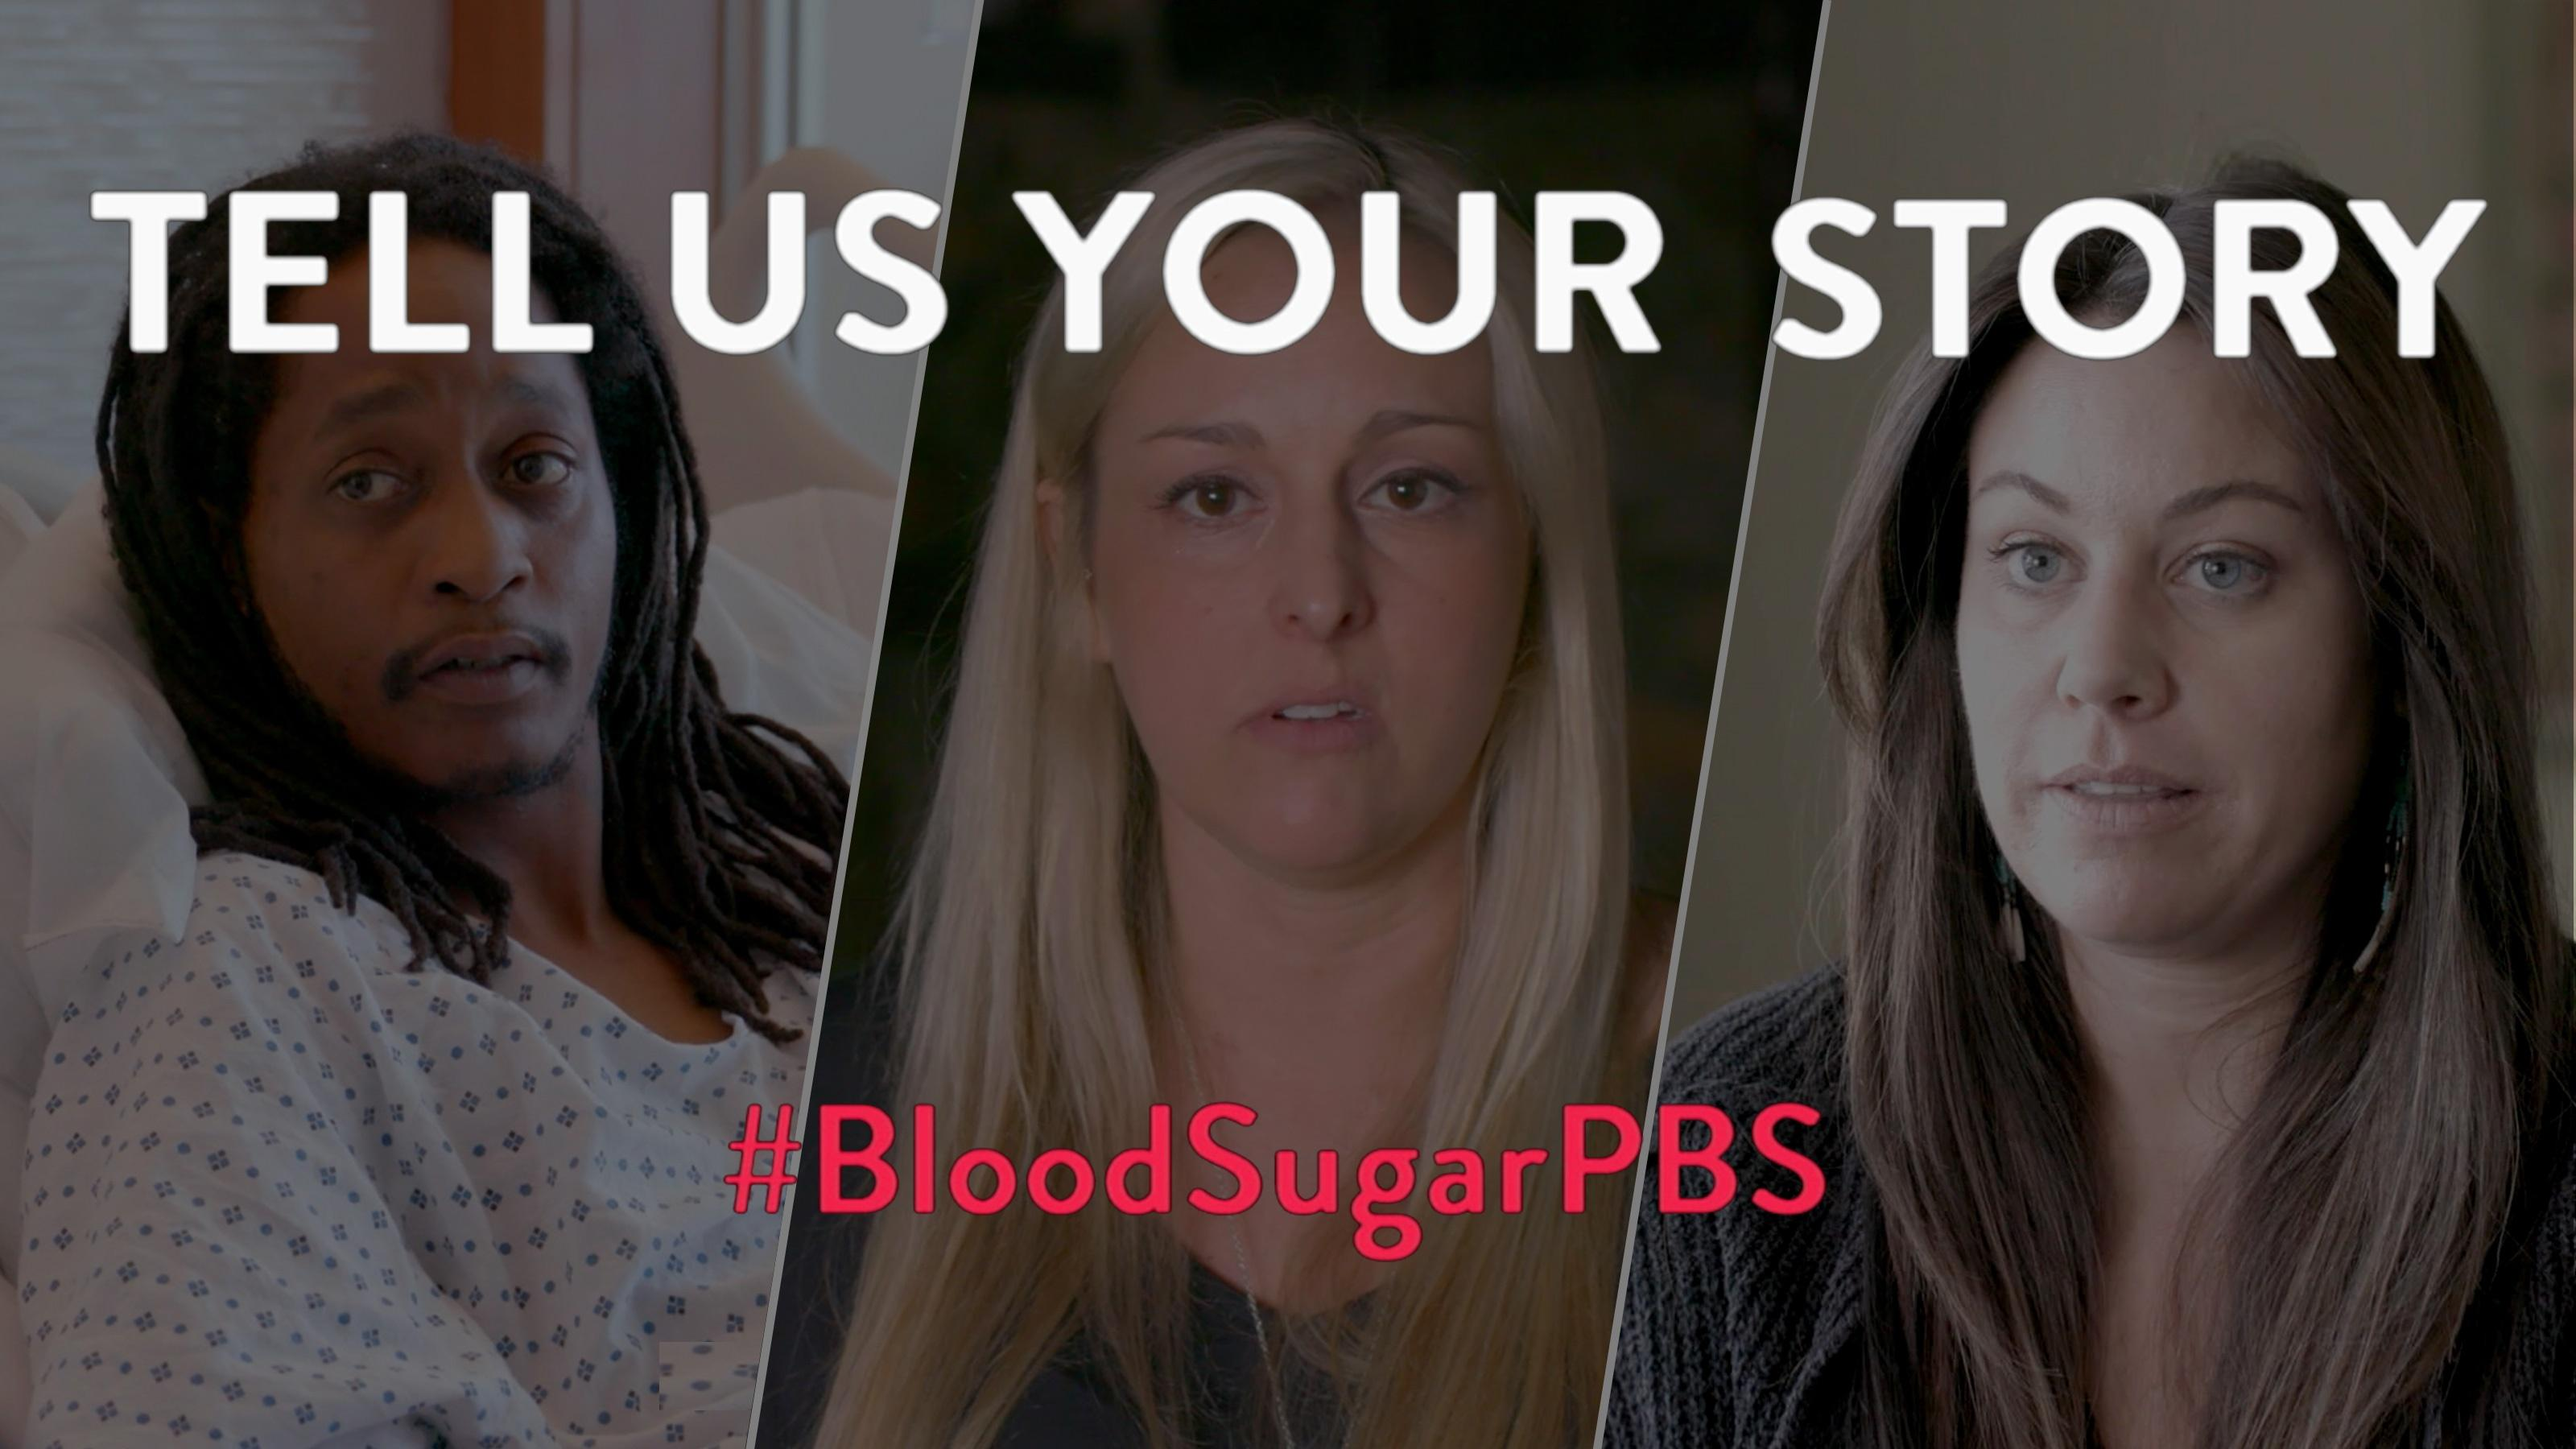 A tryptic showing Monteil Lee, Nicole, and Valarie Blue Bird Jernigan. With the words TELL US YOUR STORY #BloodSugarPBS